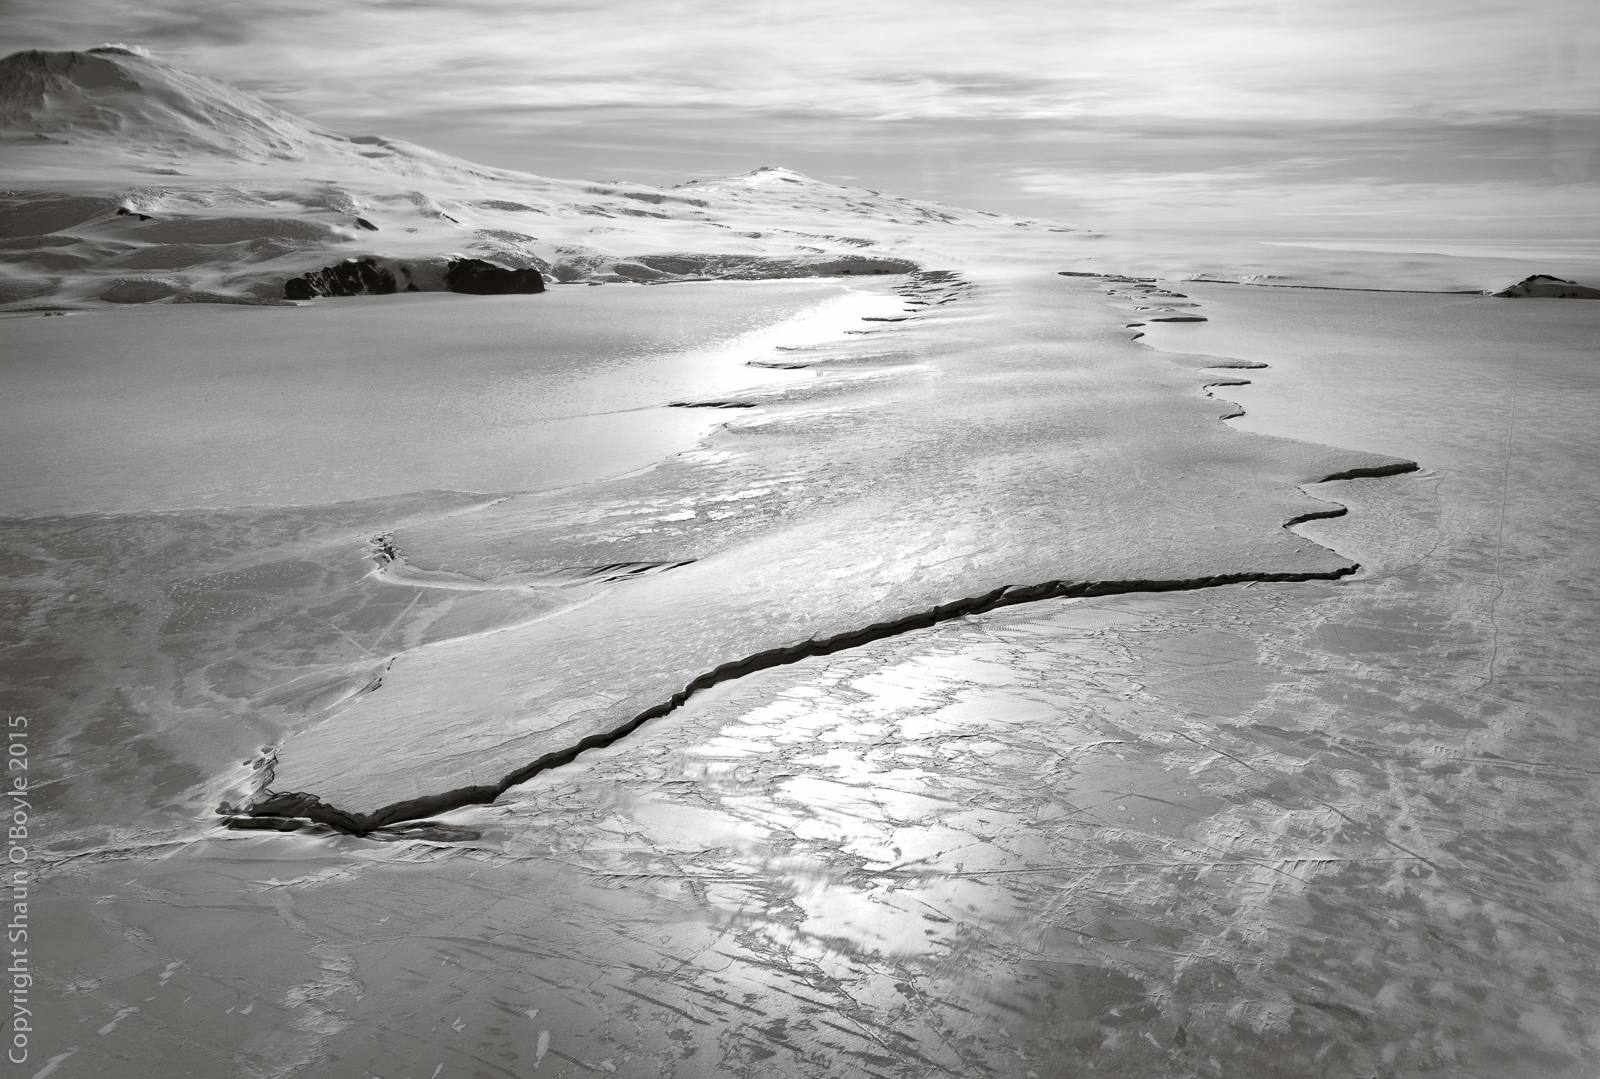 The Erebus Ice Tongue, an extension of the Erebus Glacier out into the Ross Sea.